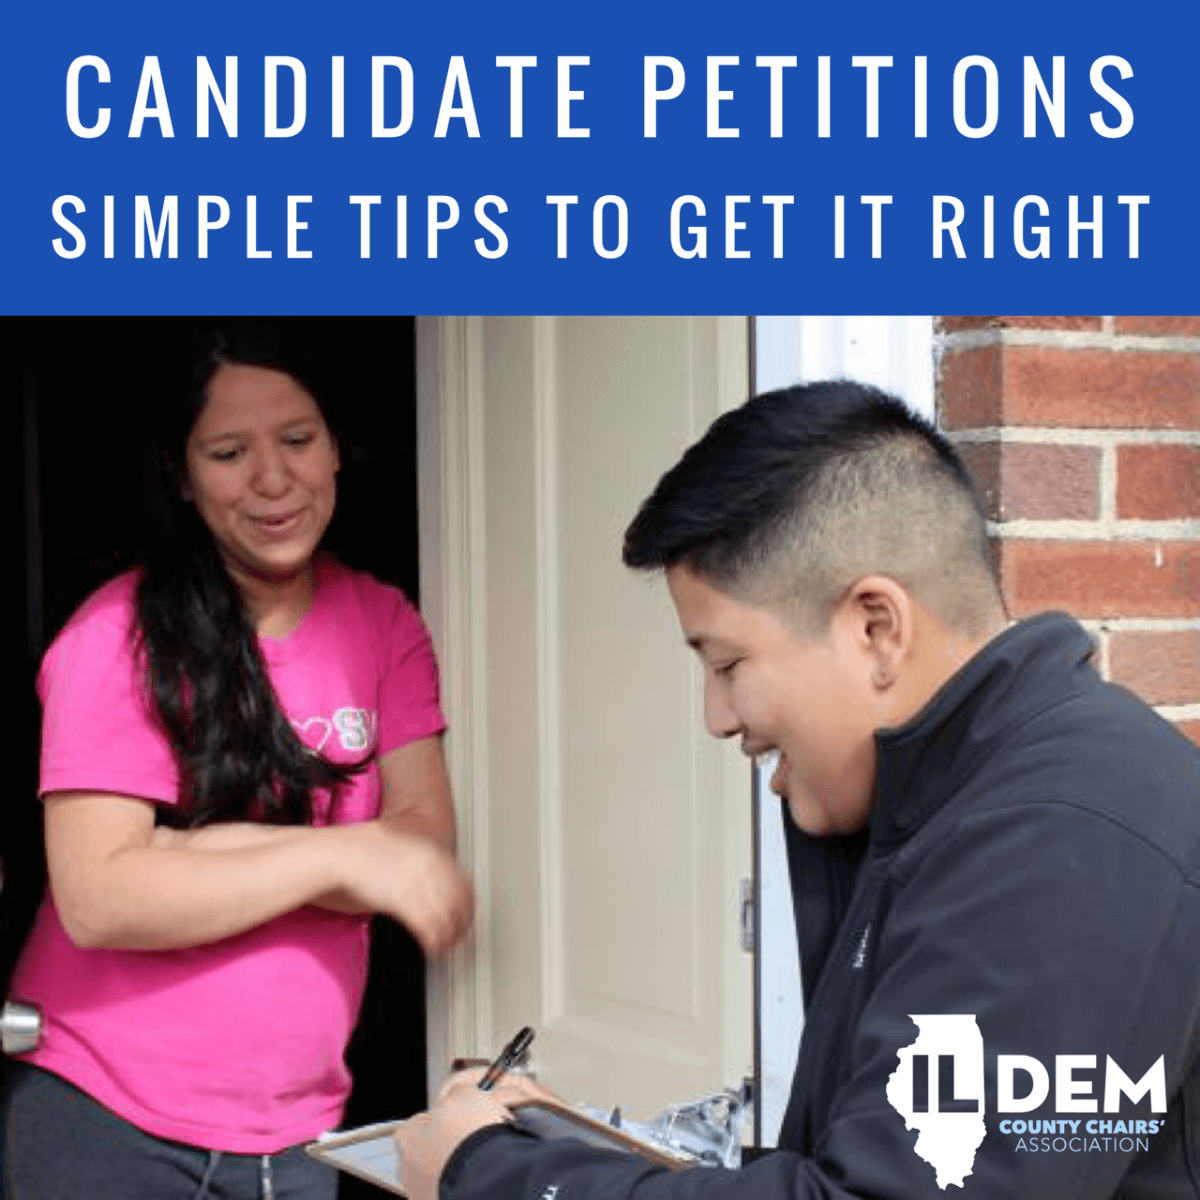 CANDIDATE PETITIONS, SIMPLE TIPS TO GET IT RIGHT